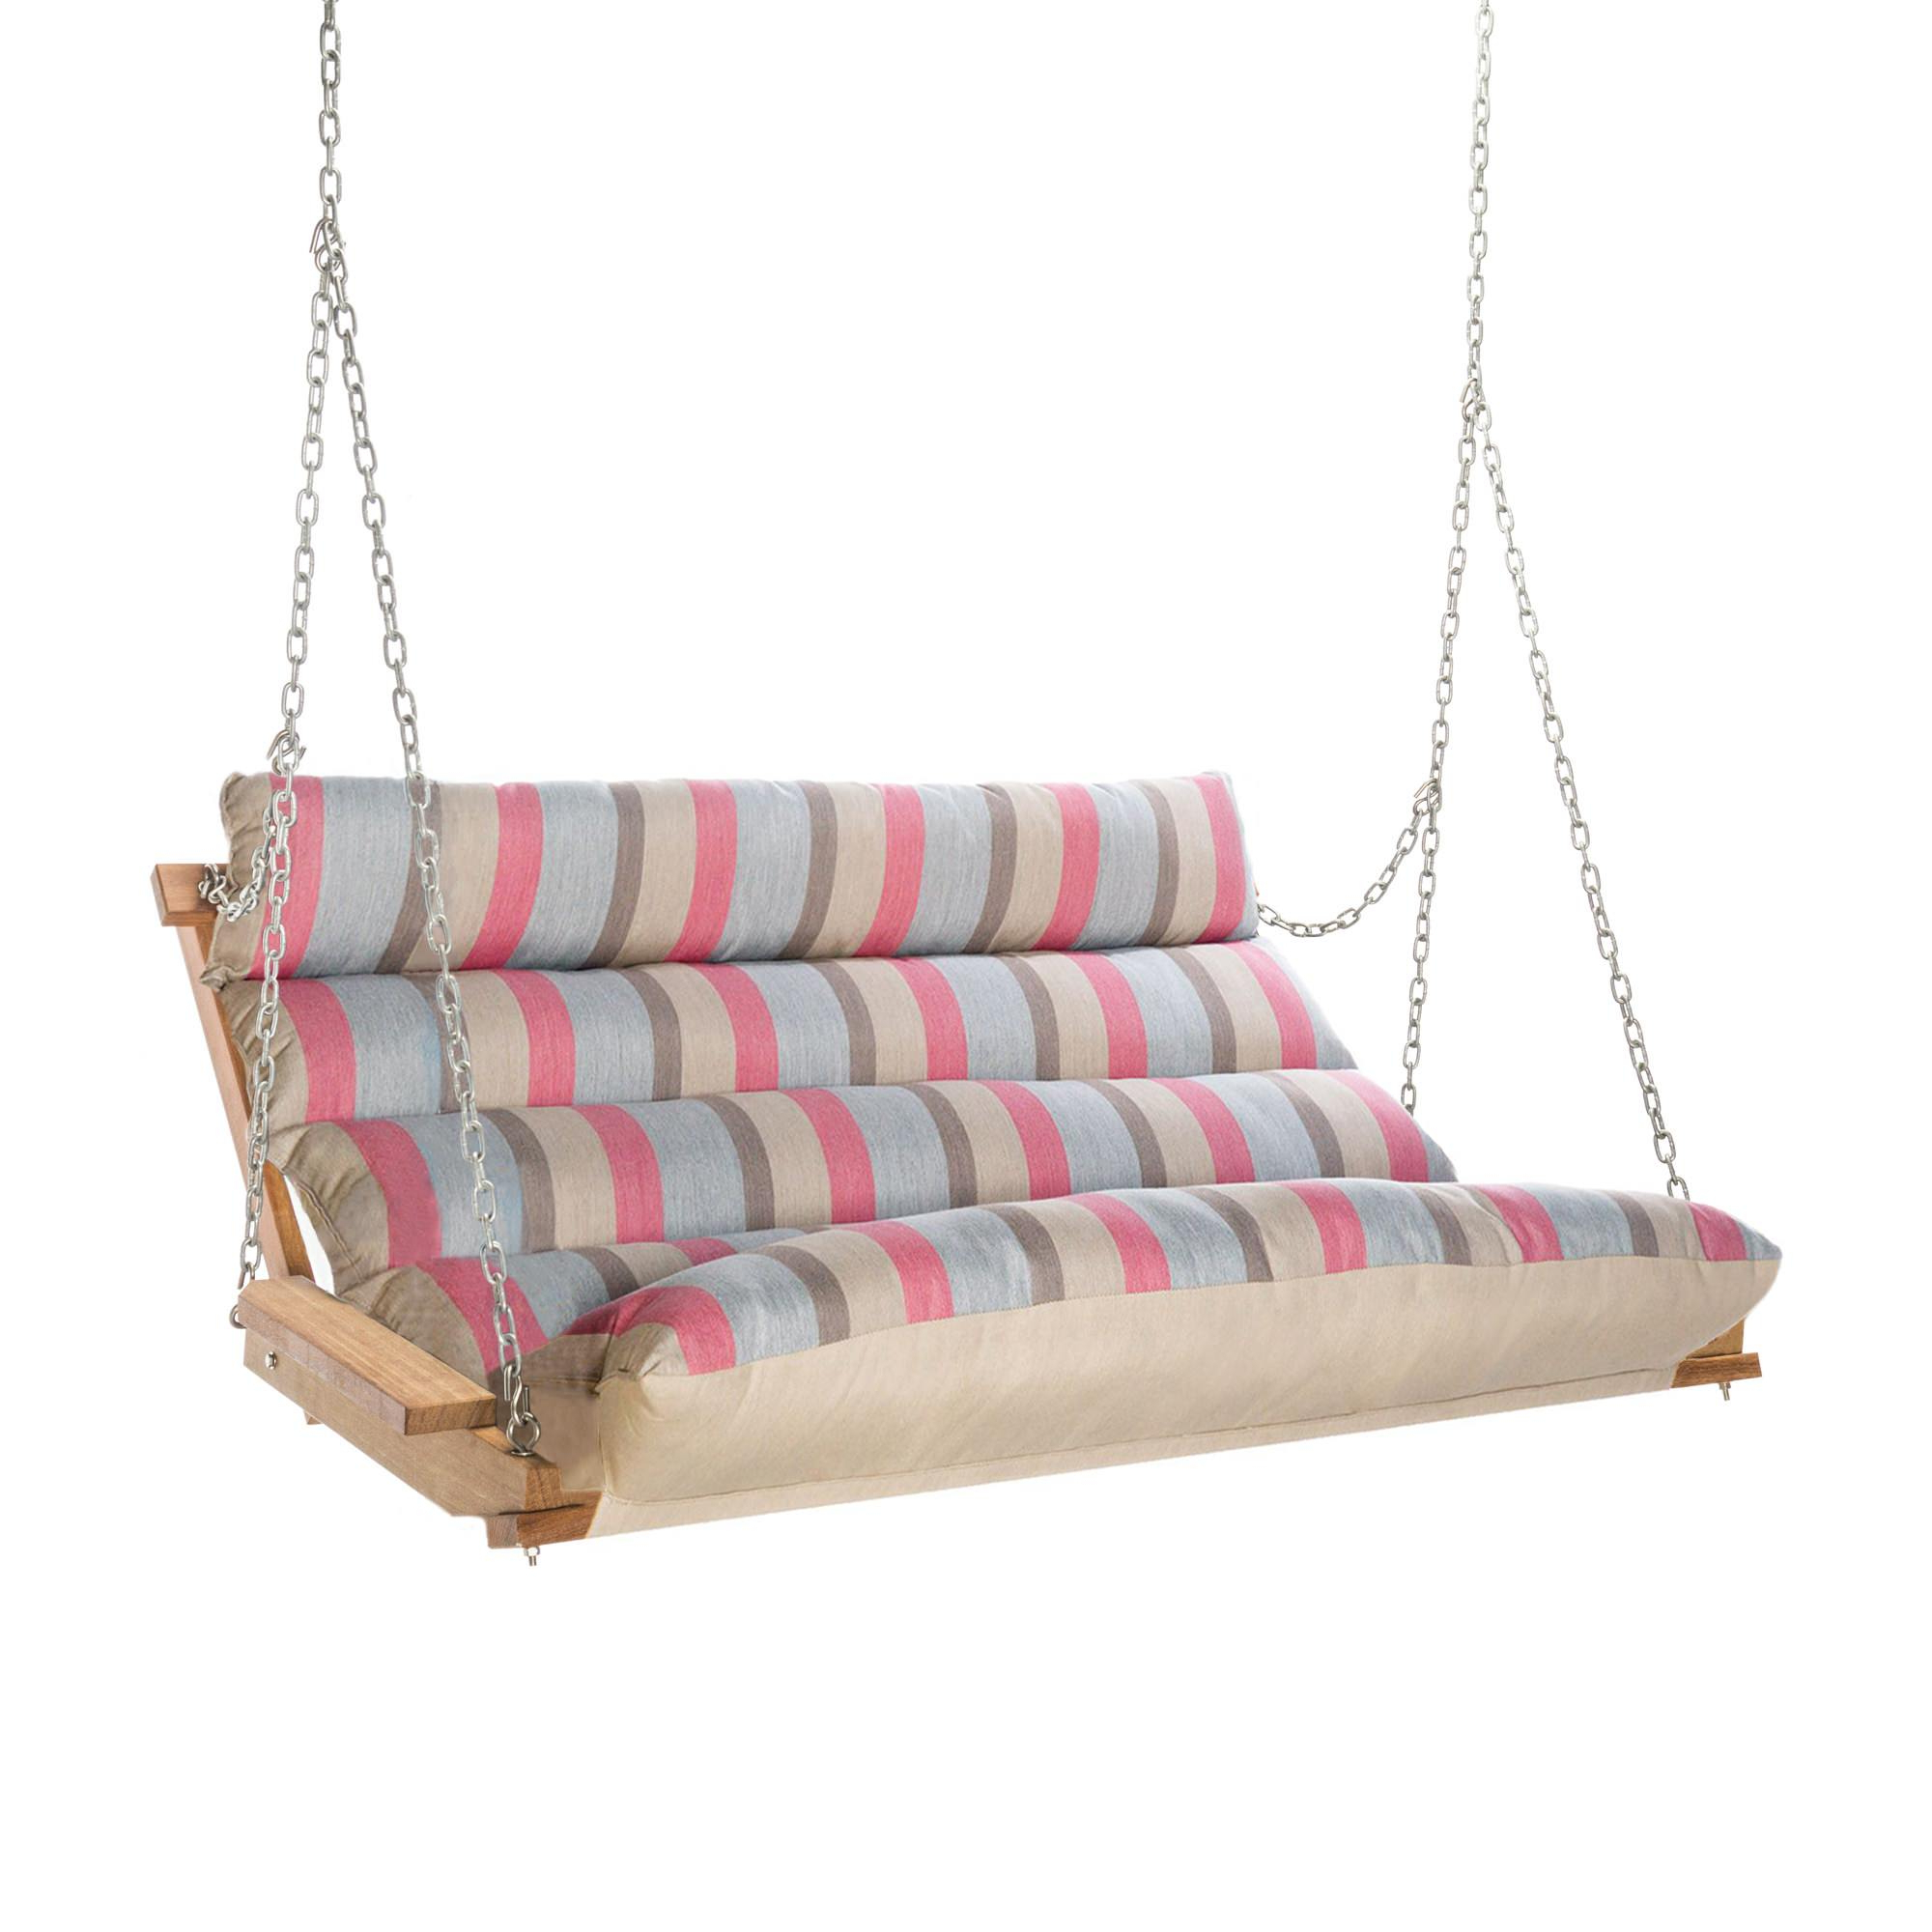 Most Recently Released Welcome To Hatteras Hammocks Pertaining To Deluxe Cushion Sunbrella Porch Swings (View 9 of 30)